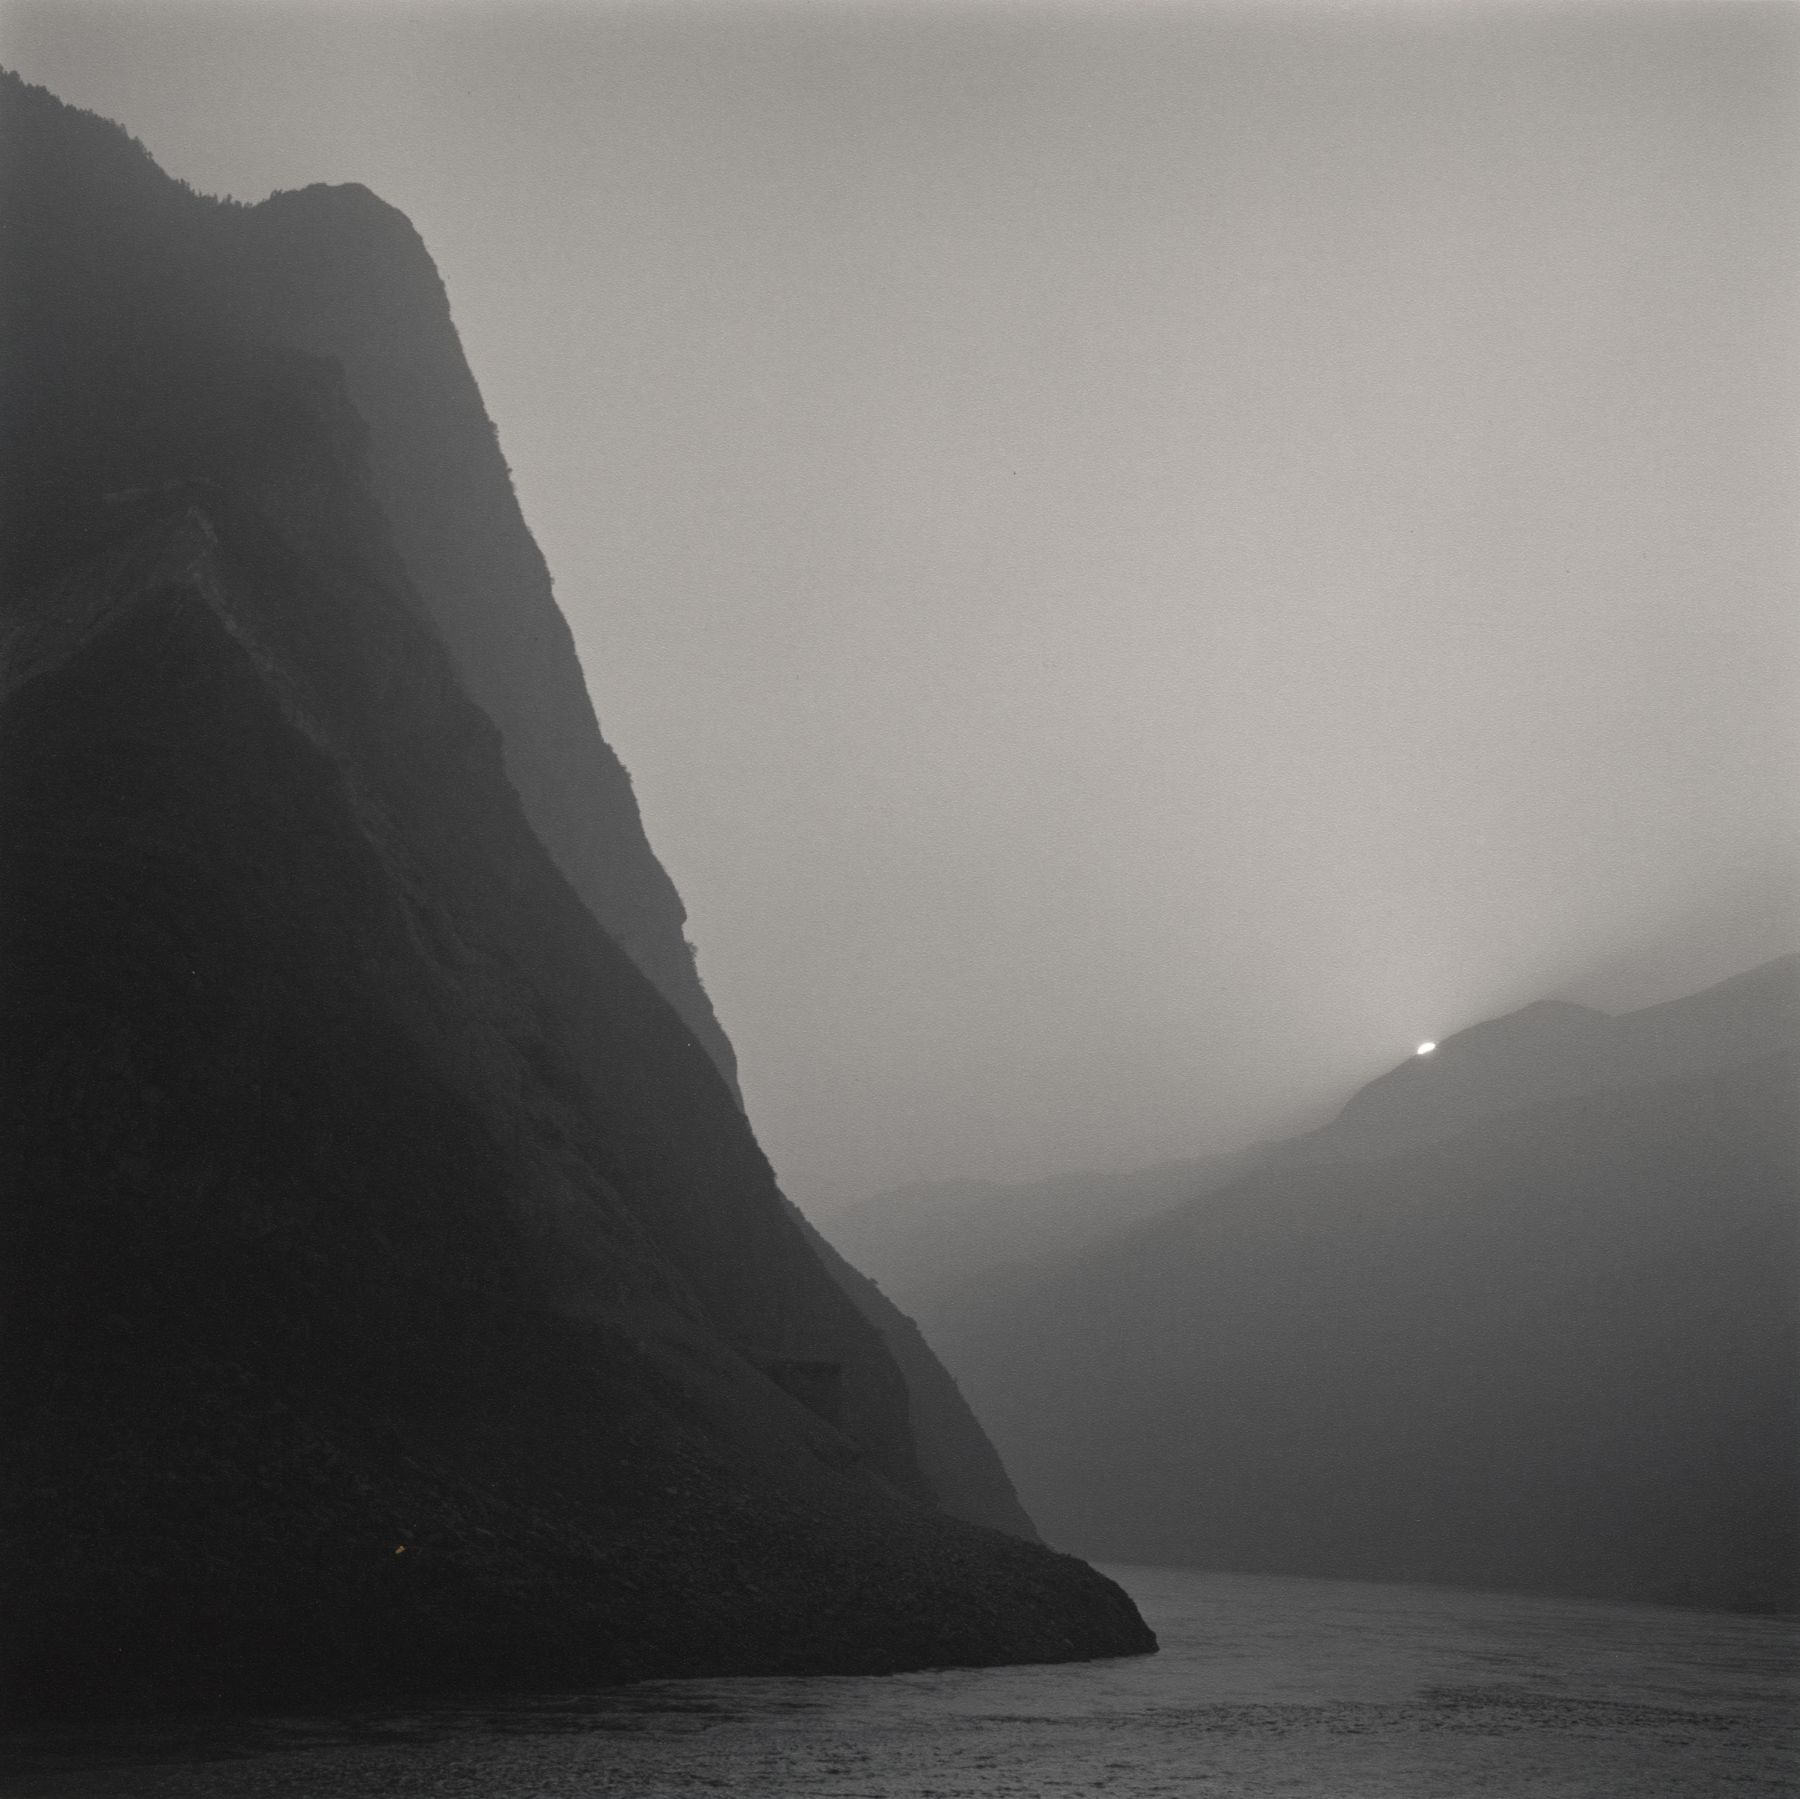 Lynn Davis, [China #08] Three Gorges, Yangtze River, China, 2001